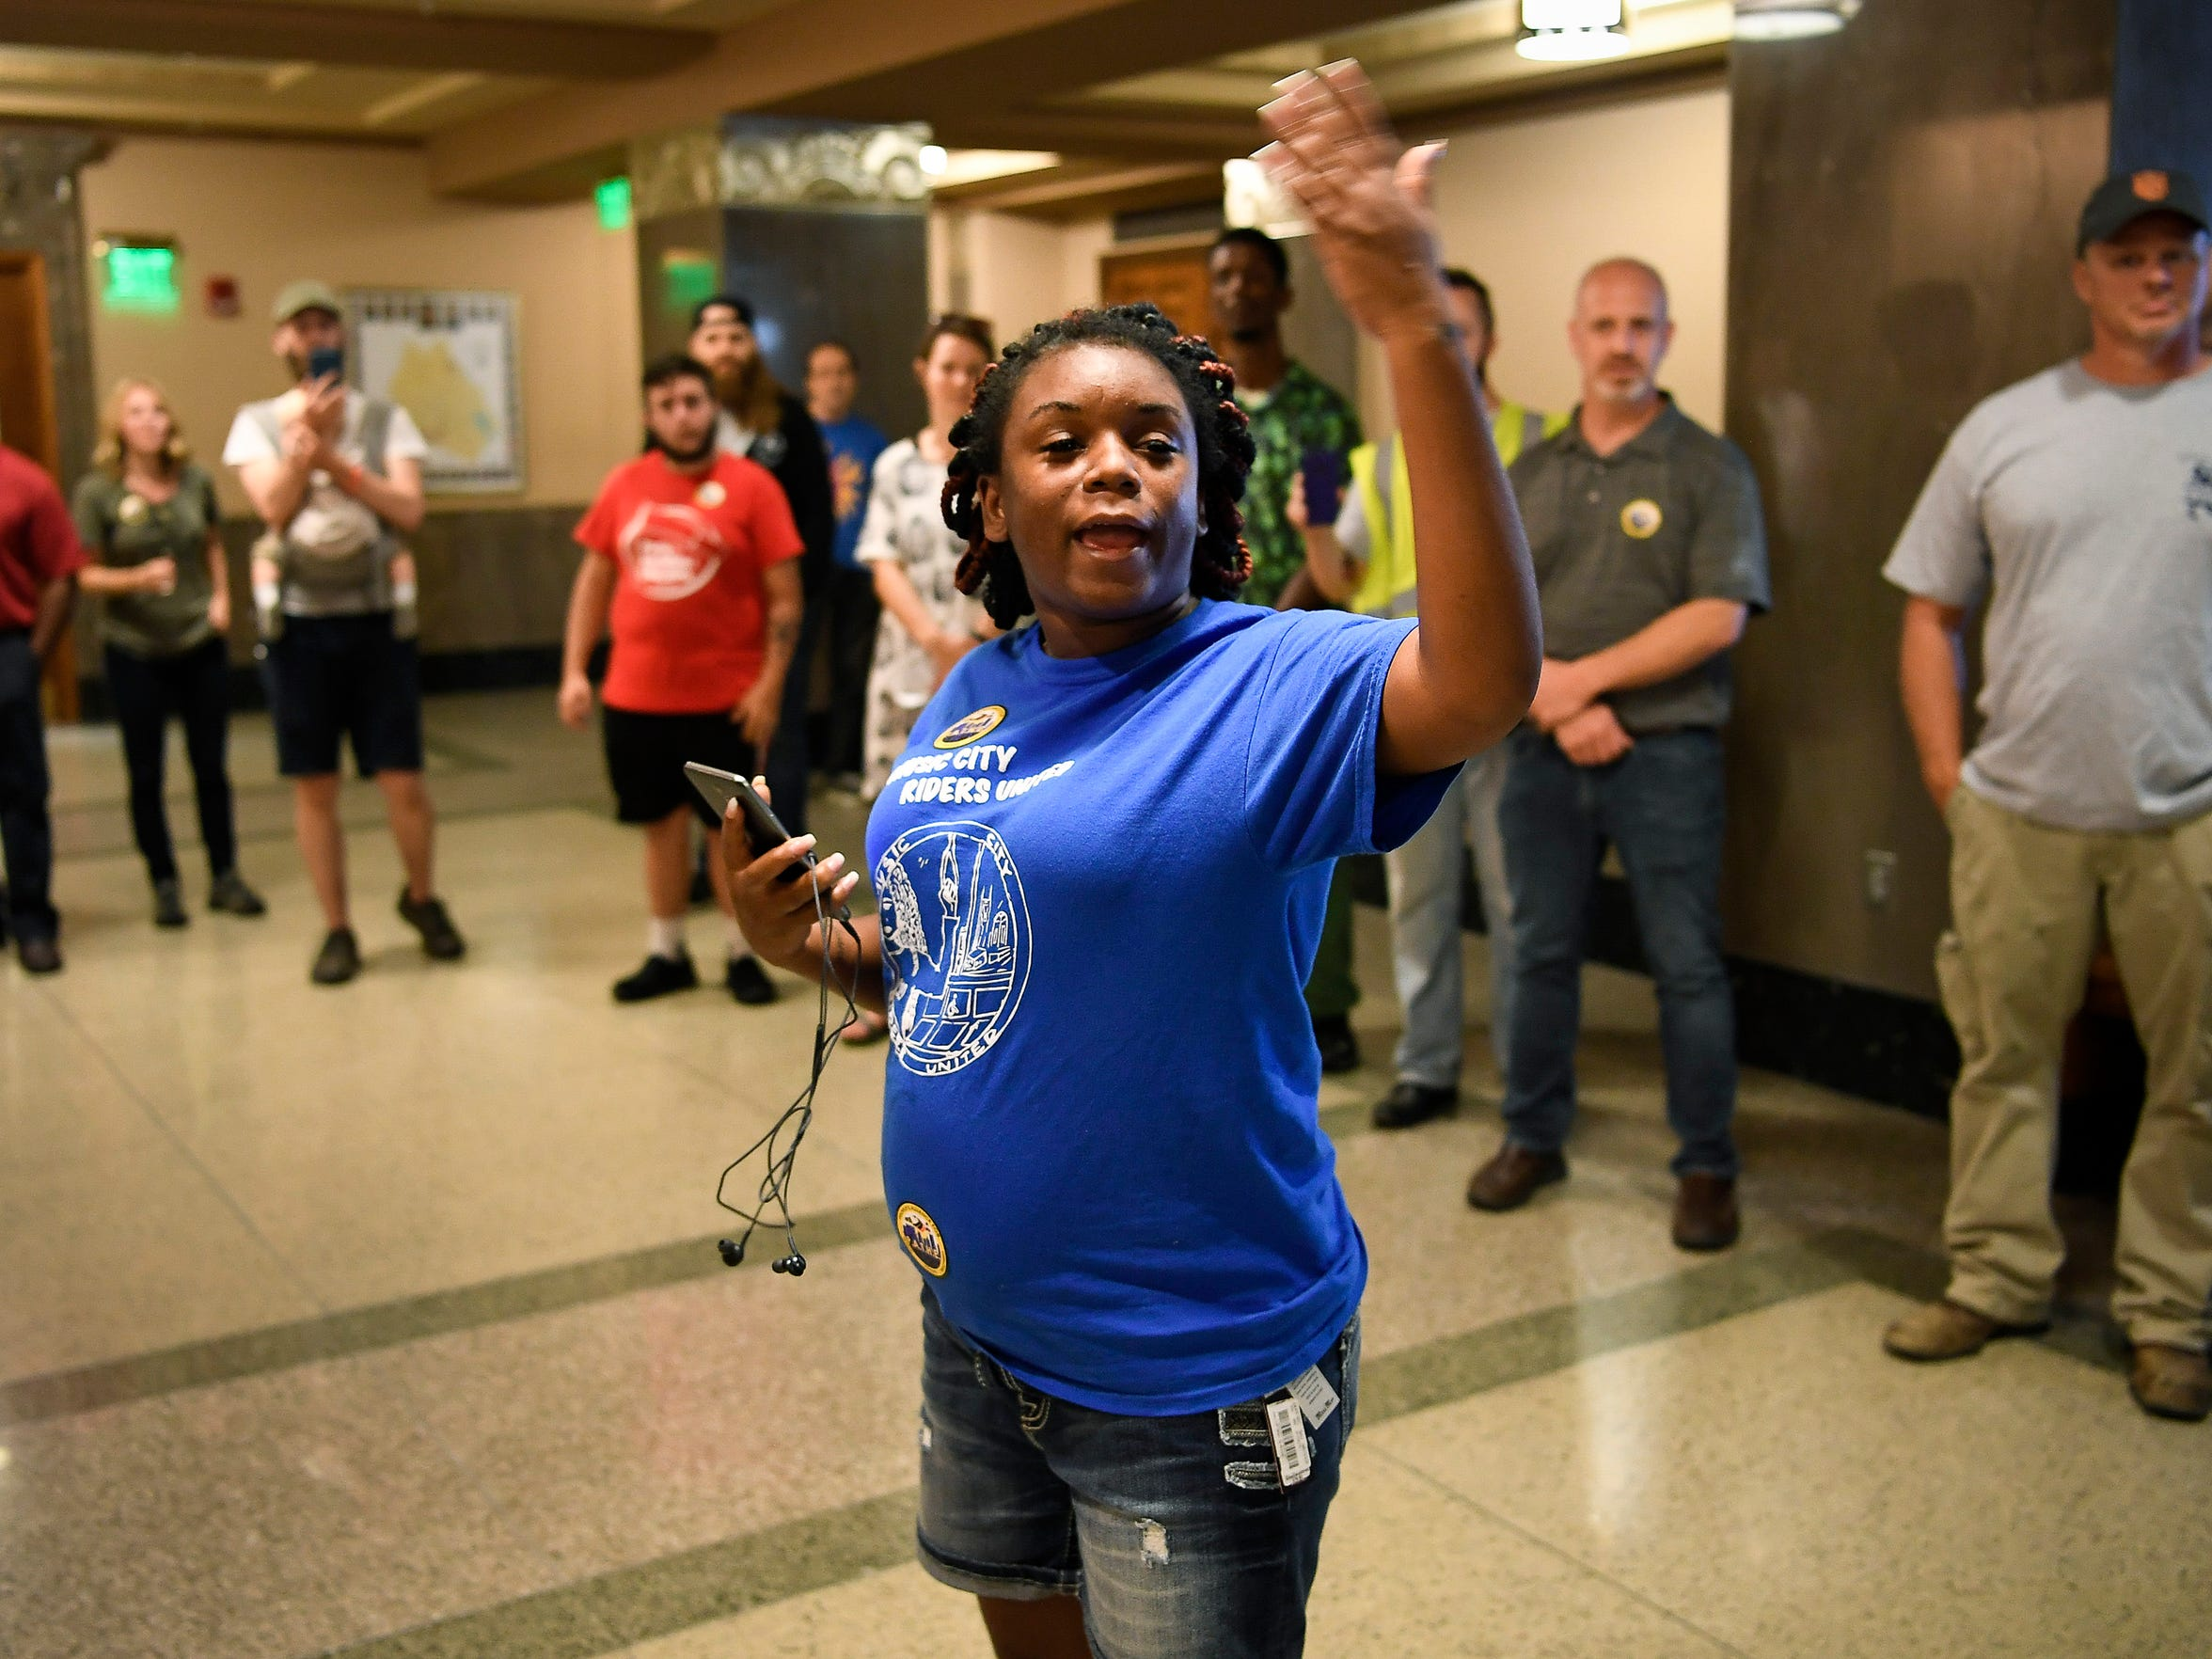 Kutonia Smith-Bond leads a march and rally for equitable public transportation Tuesday, Sept. 19, 2017, at the Metro Courthouse. Smith-Bond, who rides the bus nearly every day, is considering moving to Crossville, about 115 miles east of Nashville, because of the cost of living.